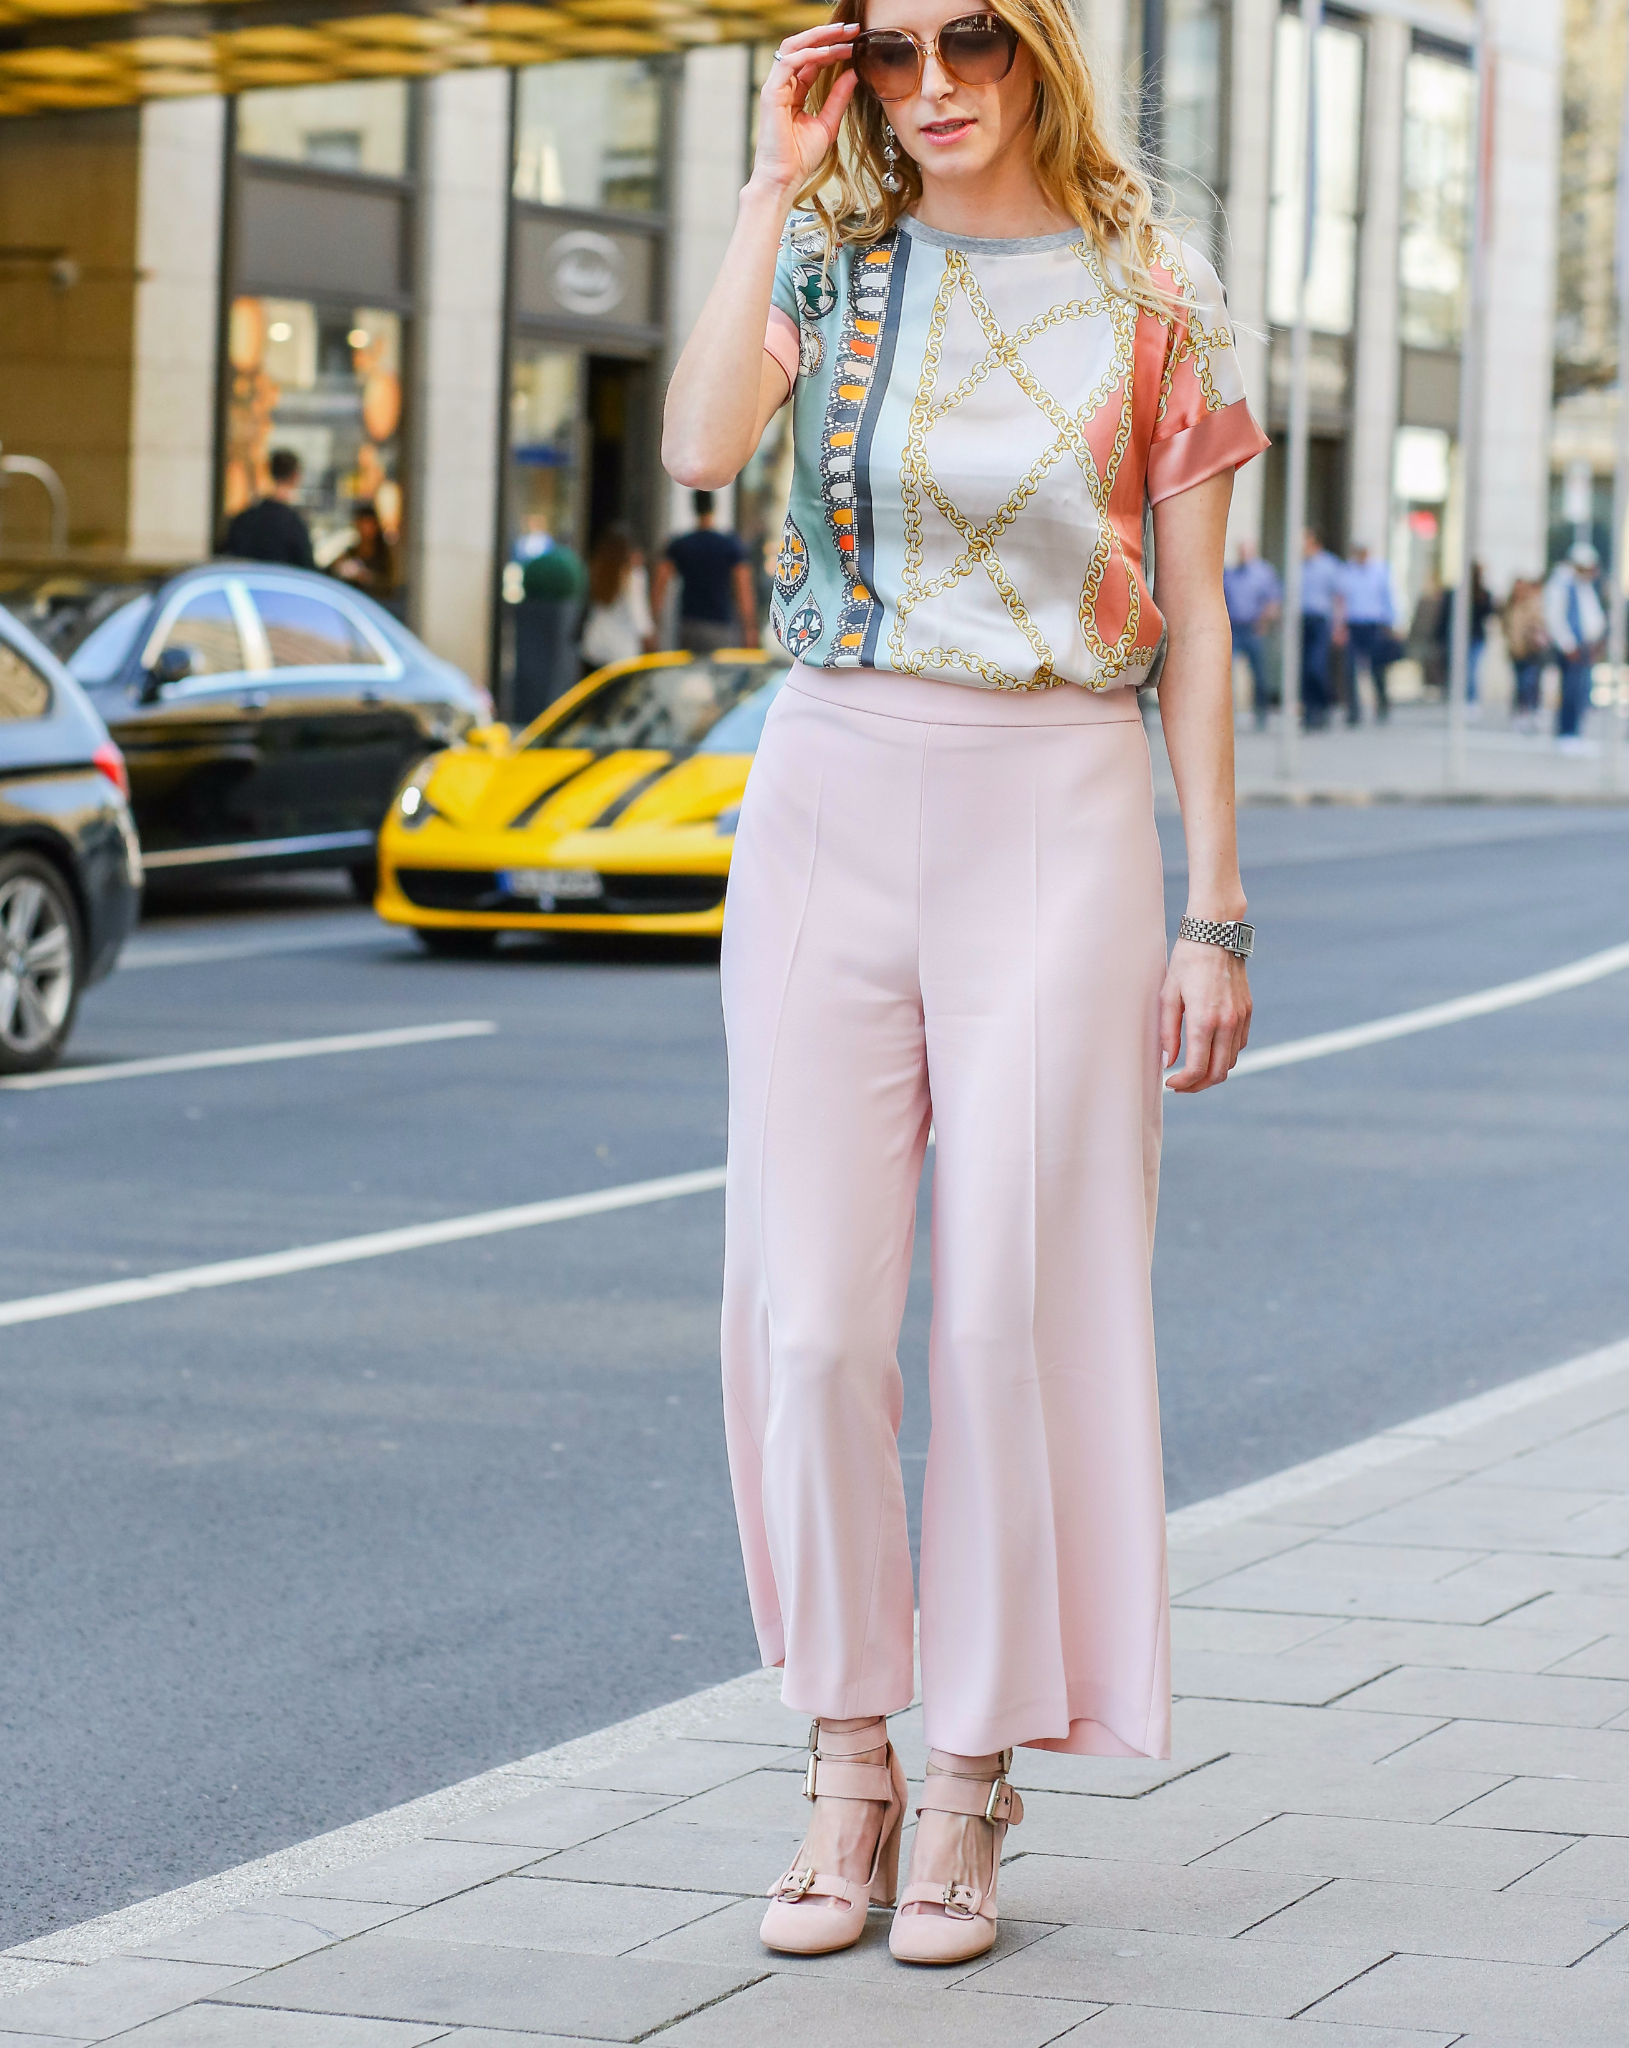 MOD-by-Monique-Fashion-Looks-A-touch-of-pink-1